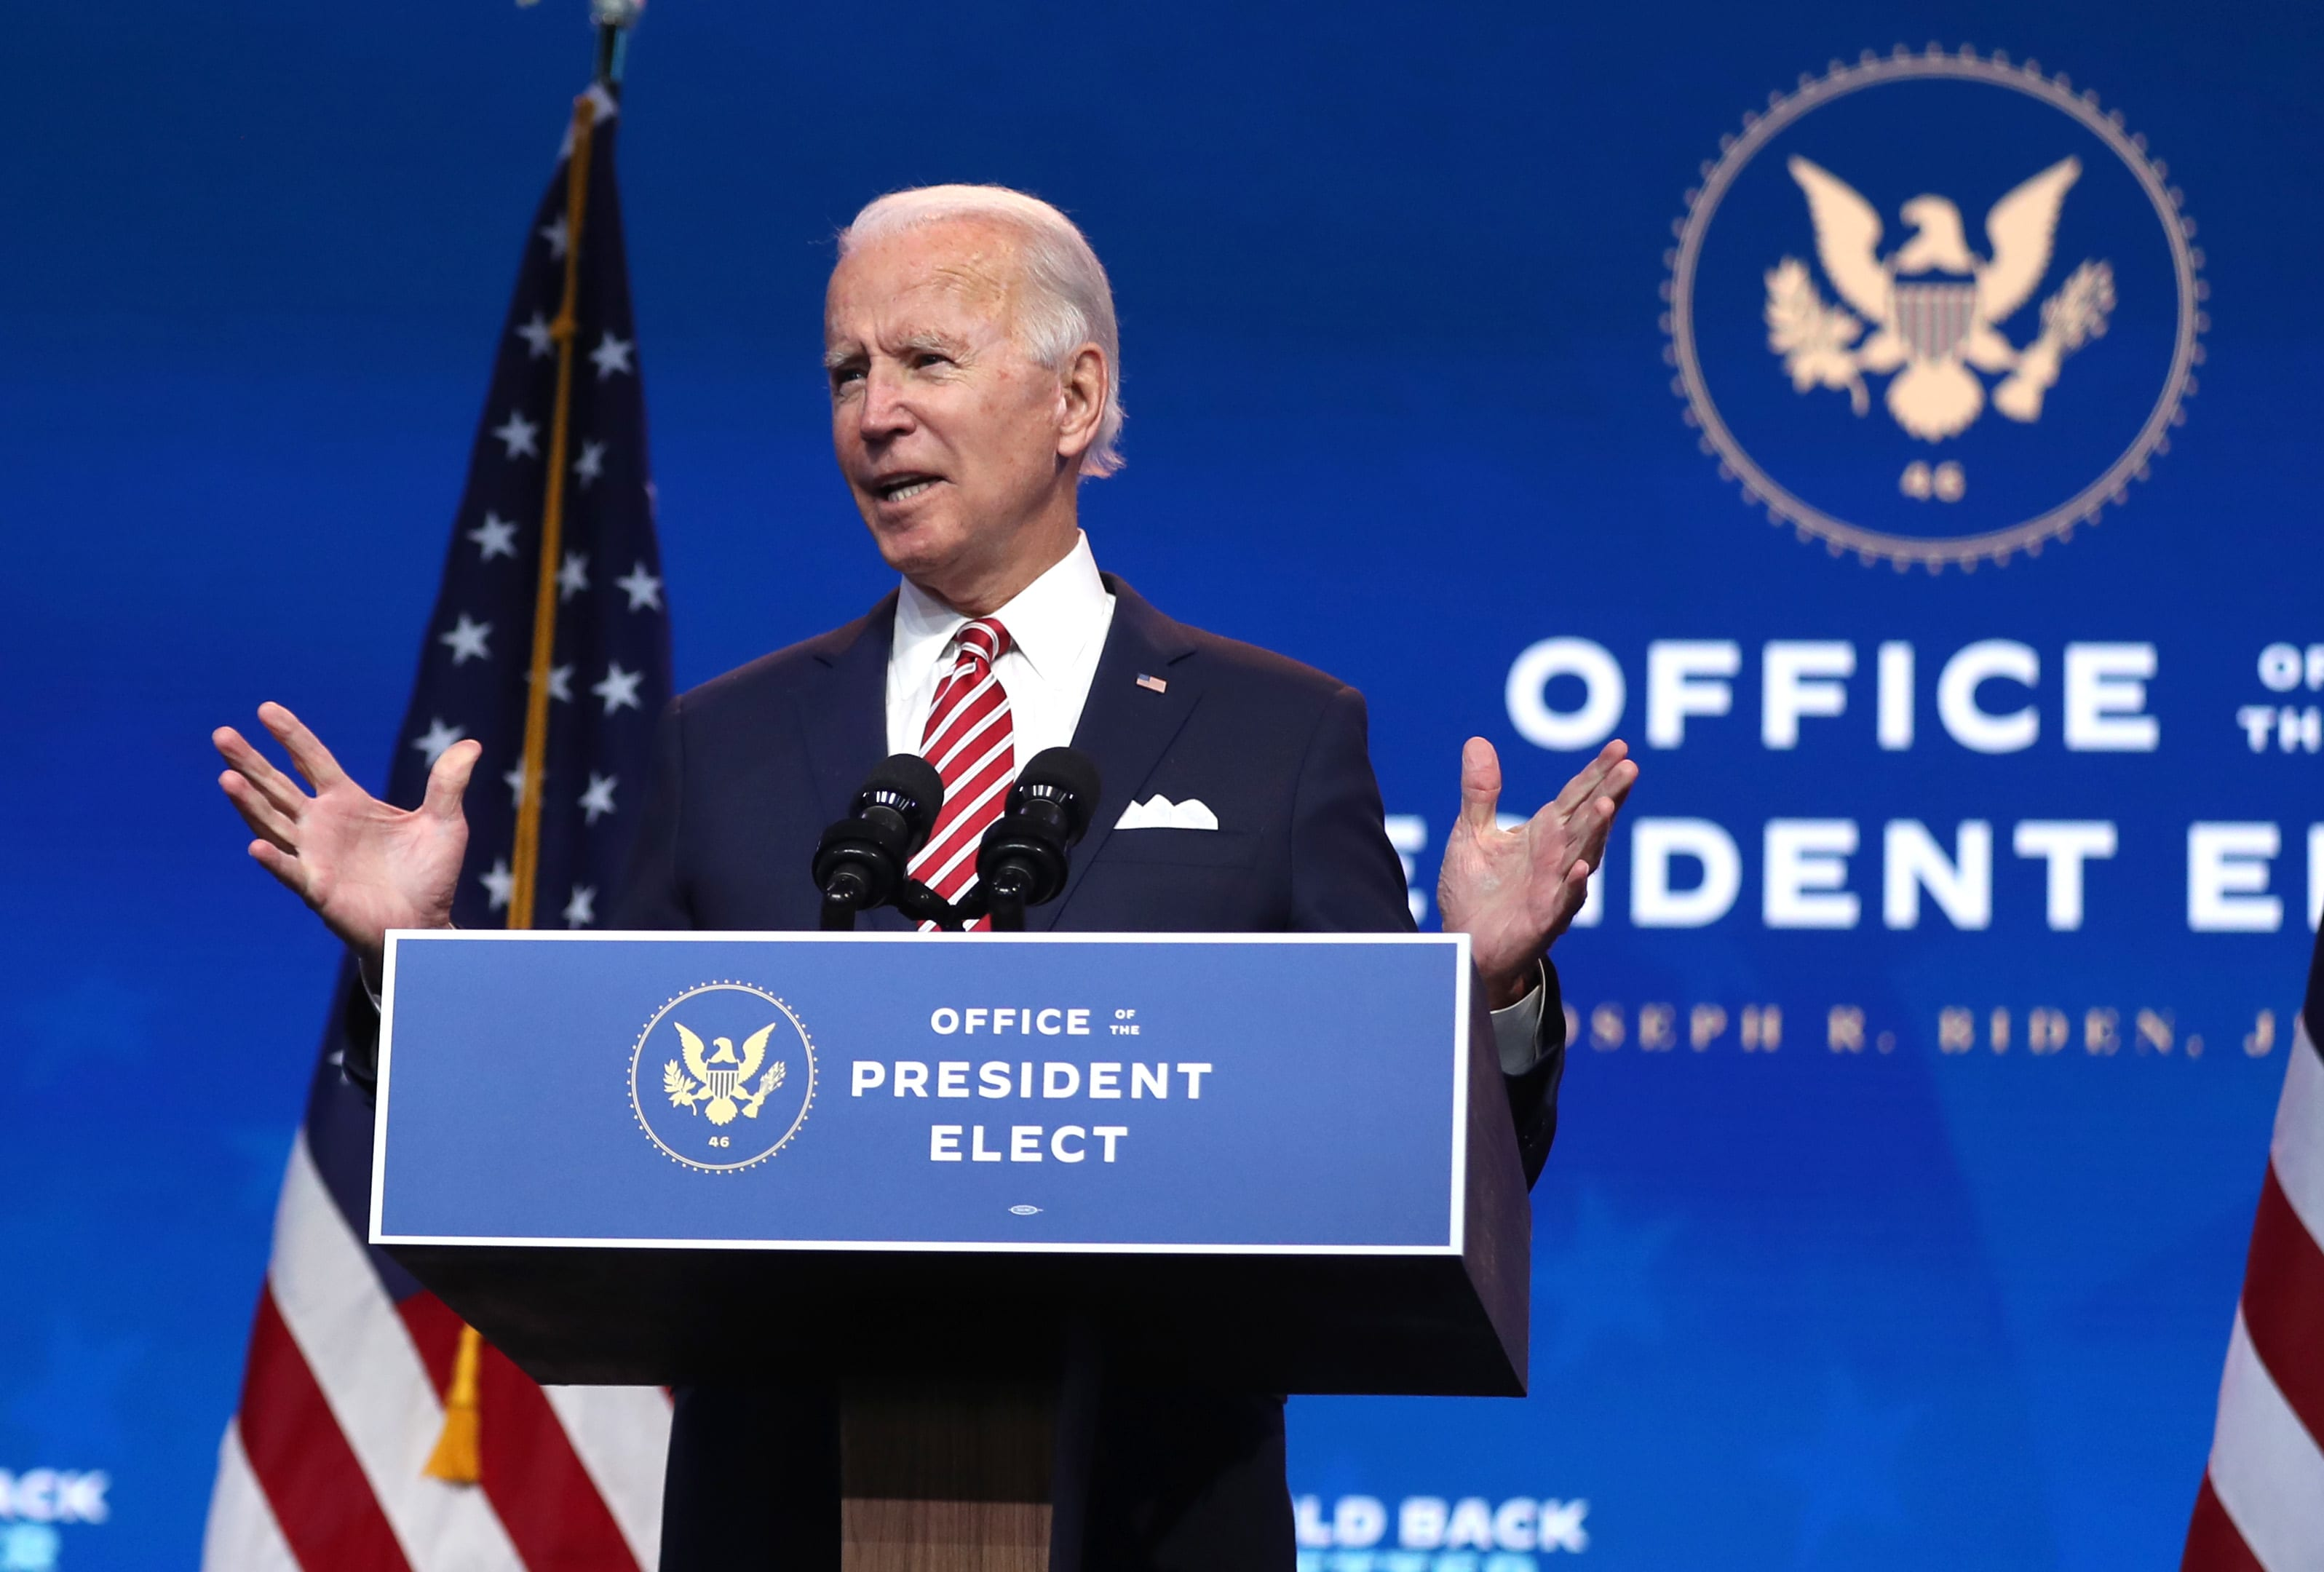 Biden forges ahead with the transition while Trump paralyzes Washington